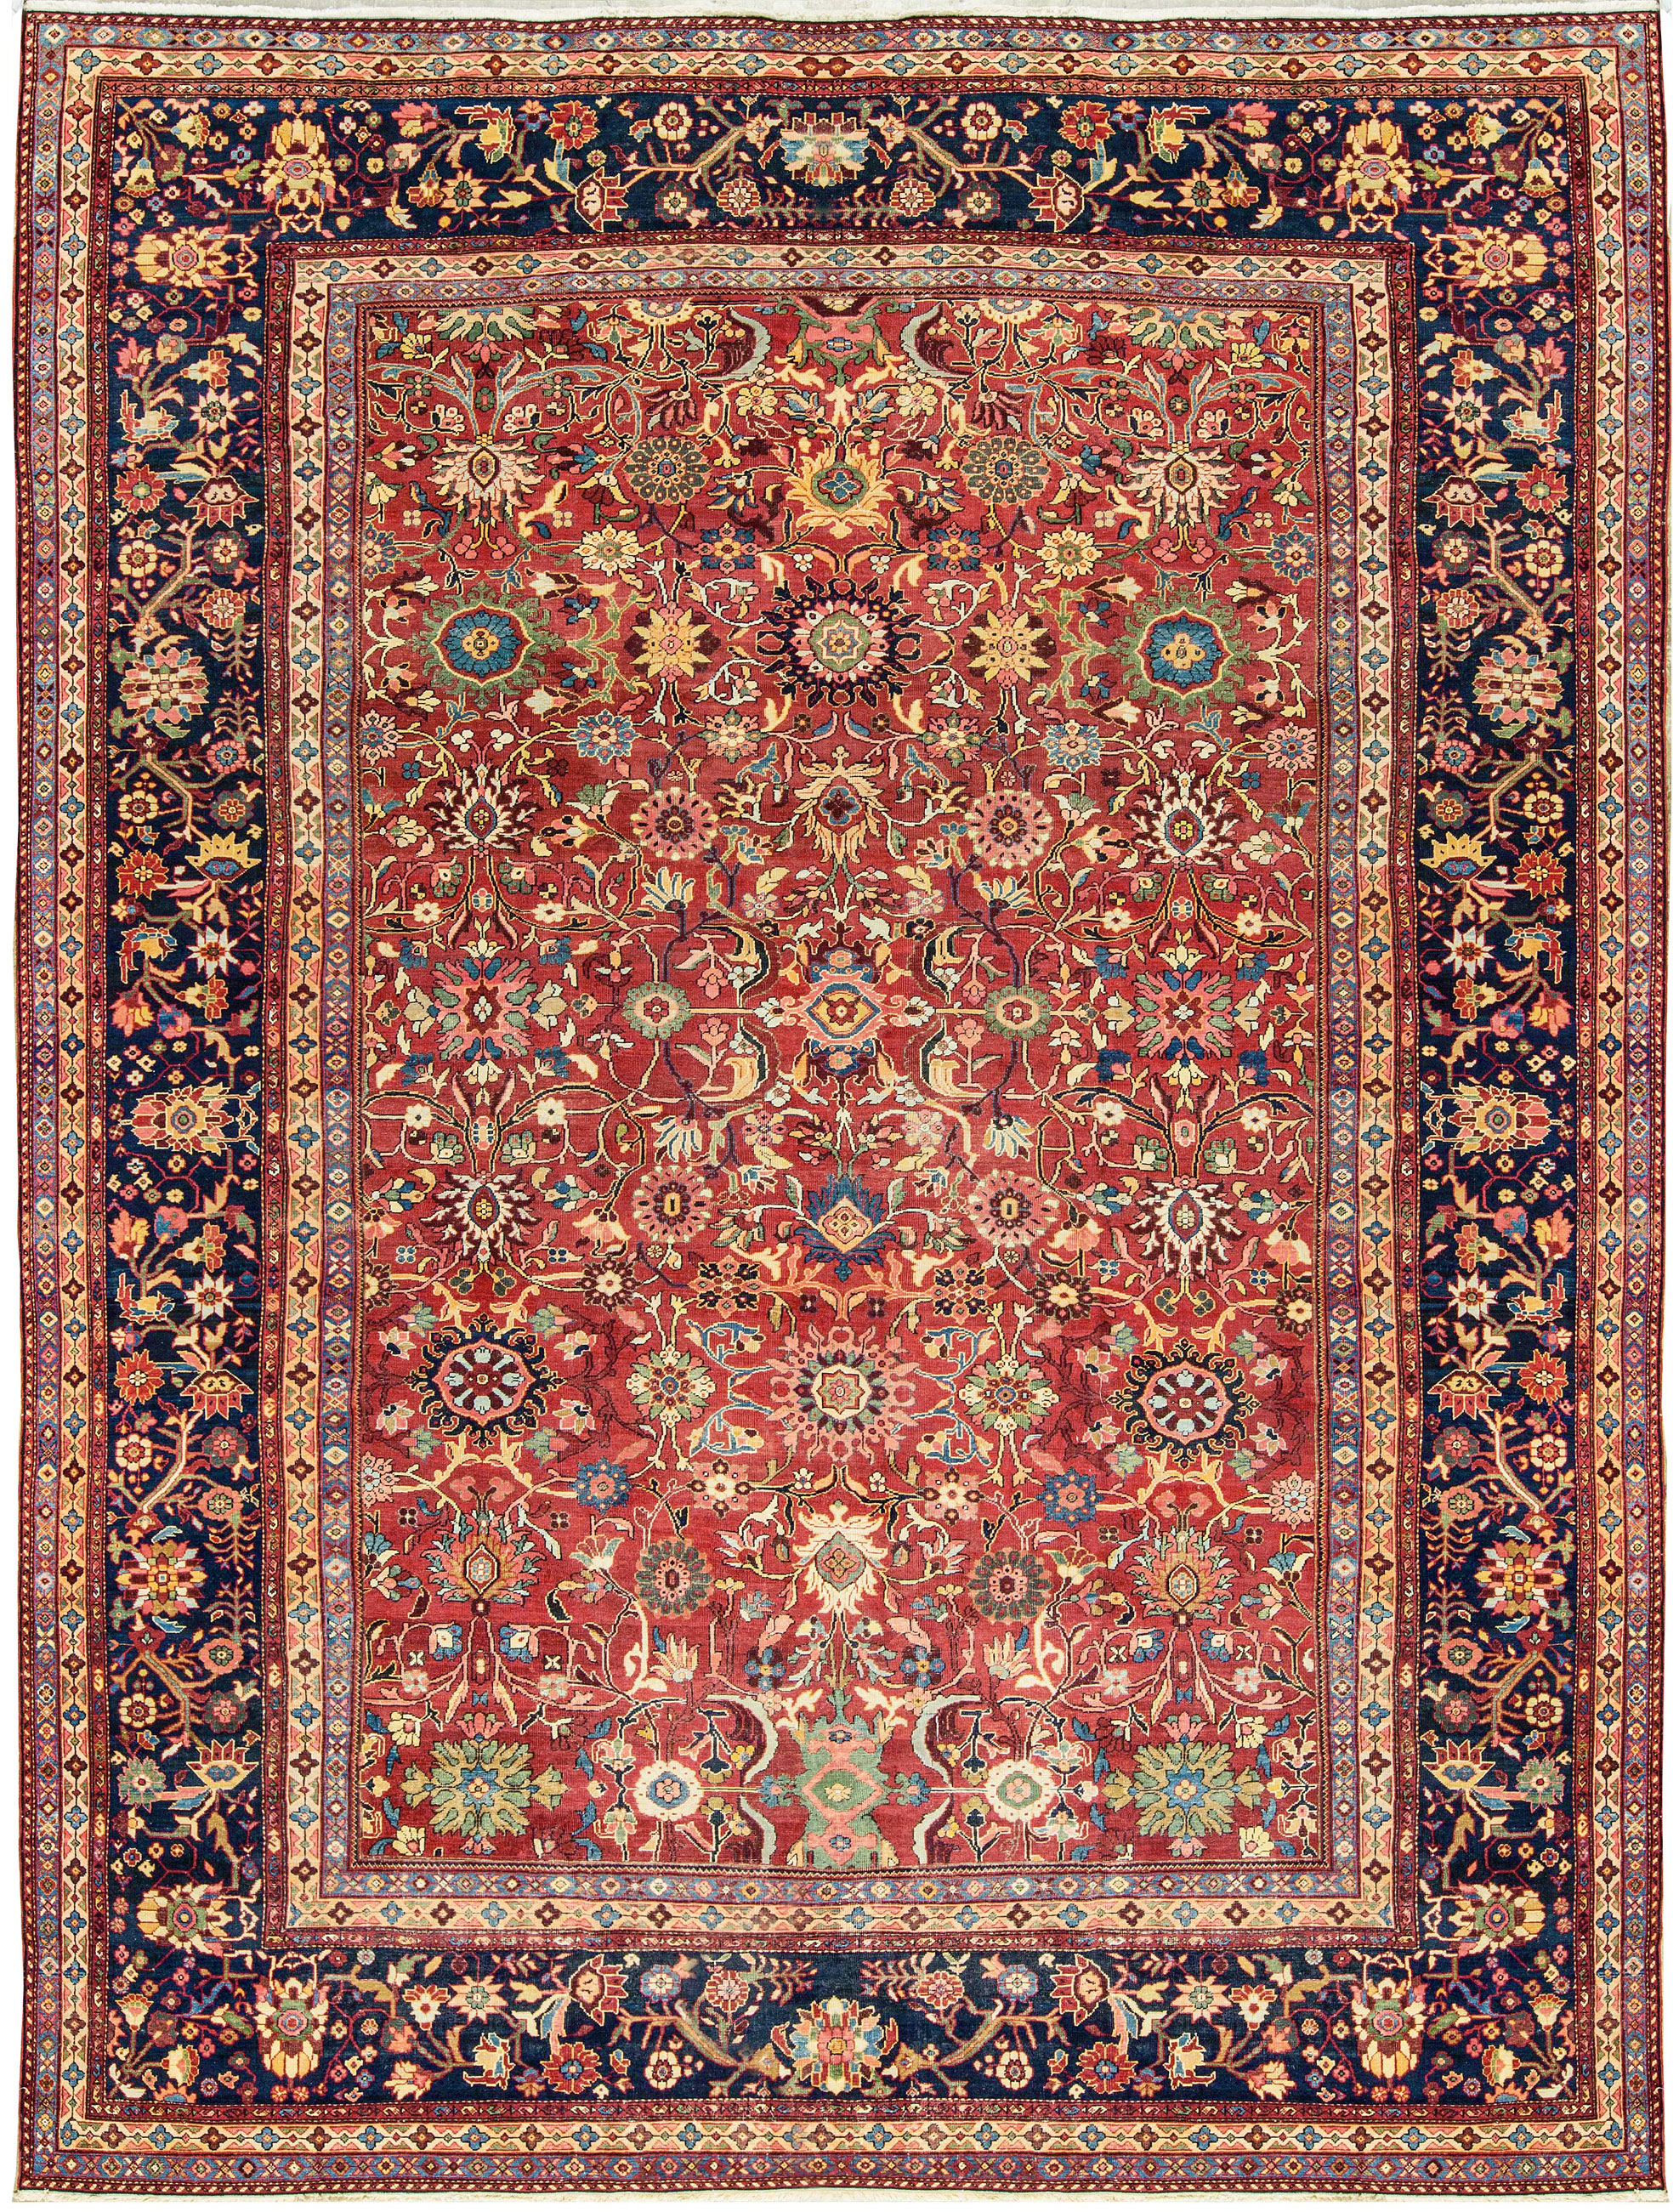 Antique Persian Sultanabad Rug Circa 1900 Tap To Expand